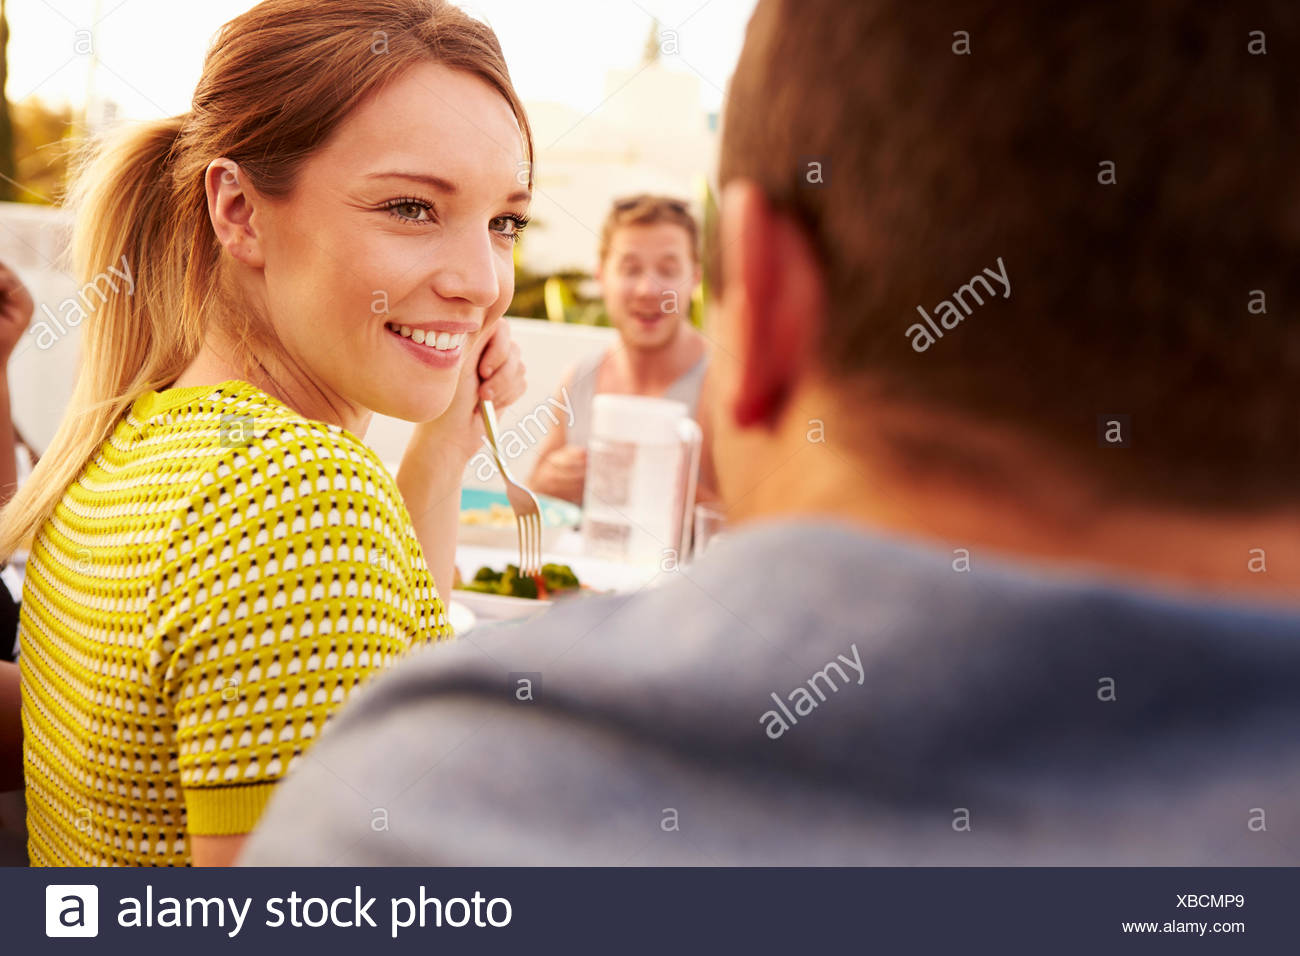 Couple Enjoying Outdoor Summer Meal With Friends - Stock Image